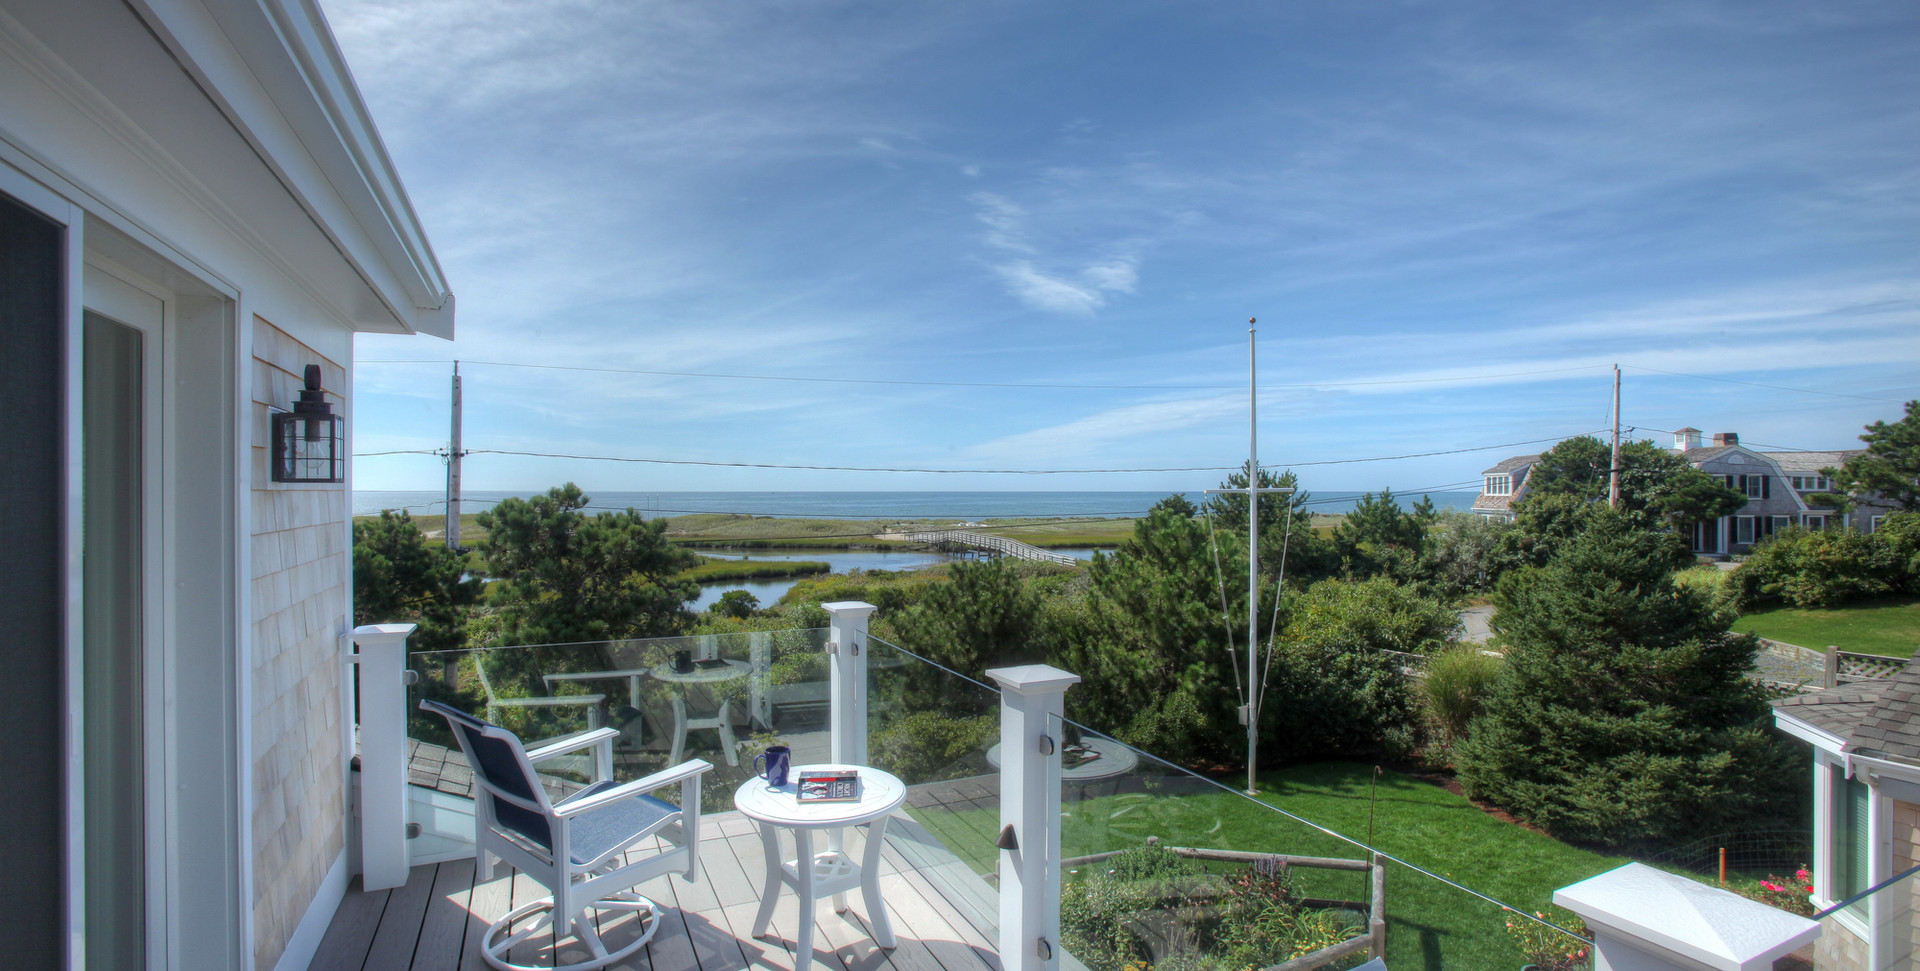 Ridgevale Beach, West Chatham, MA, Home Remodel, outdoor living